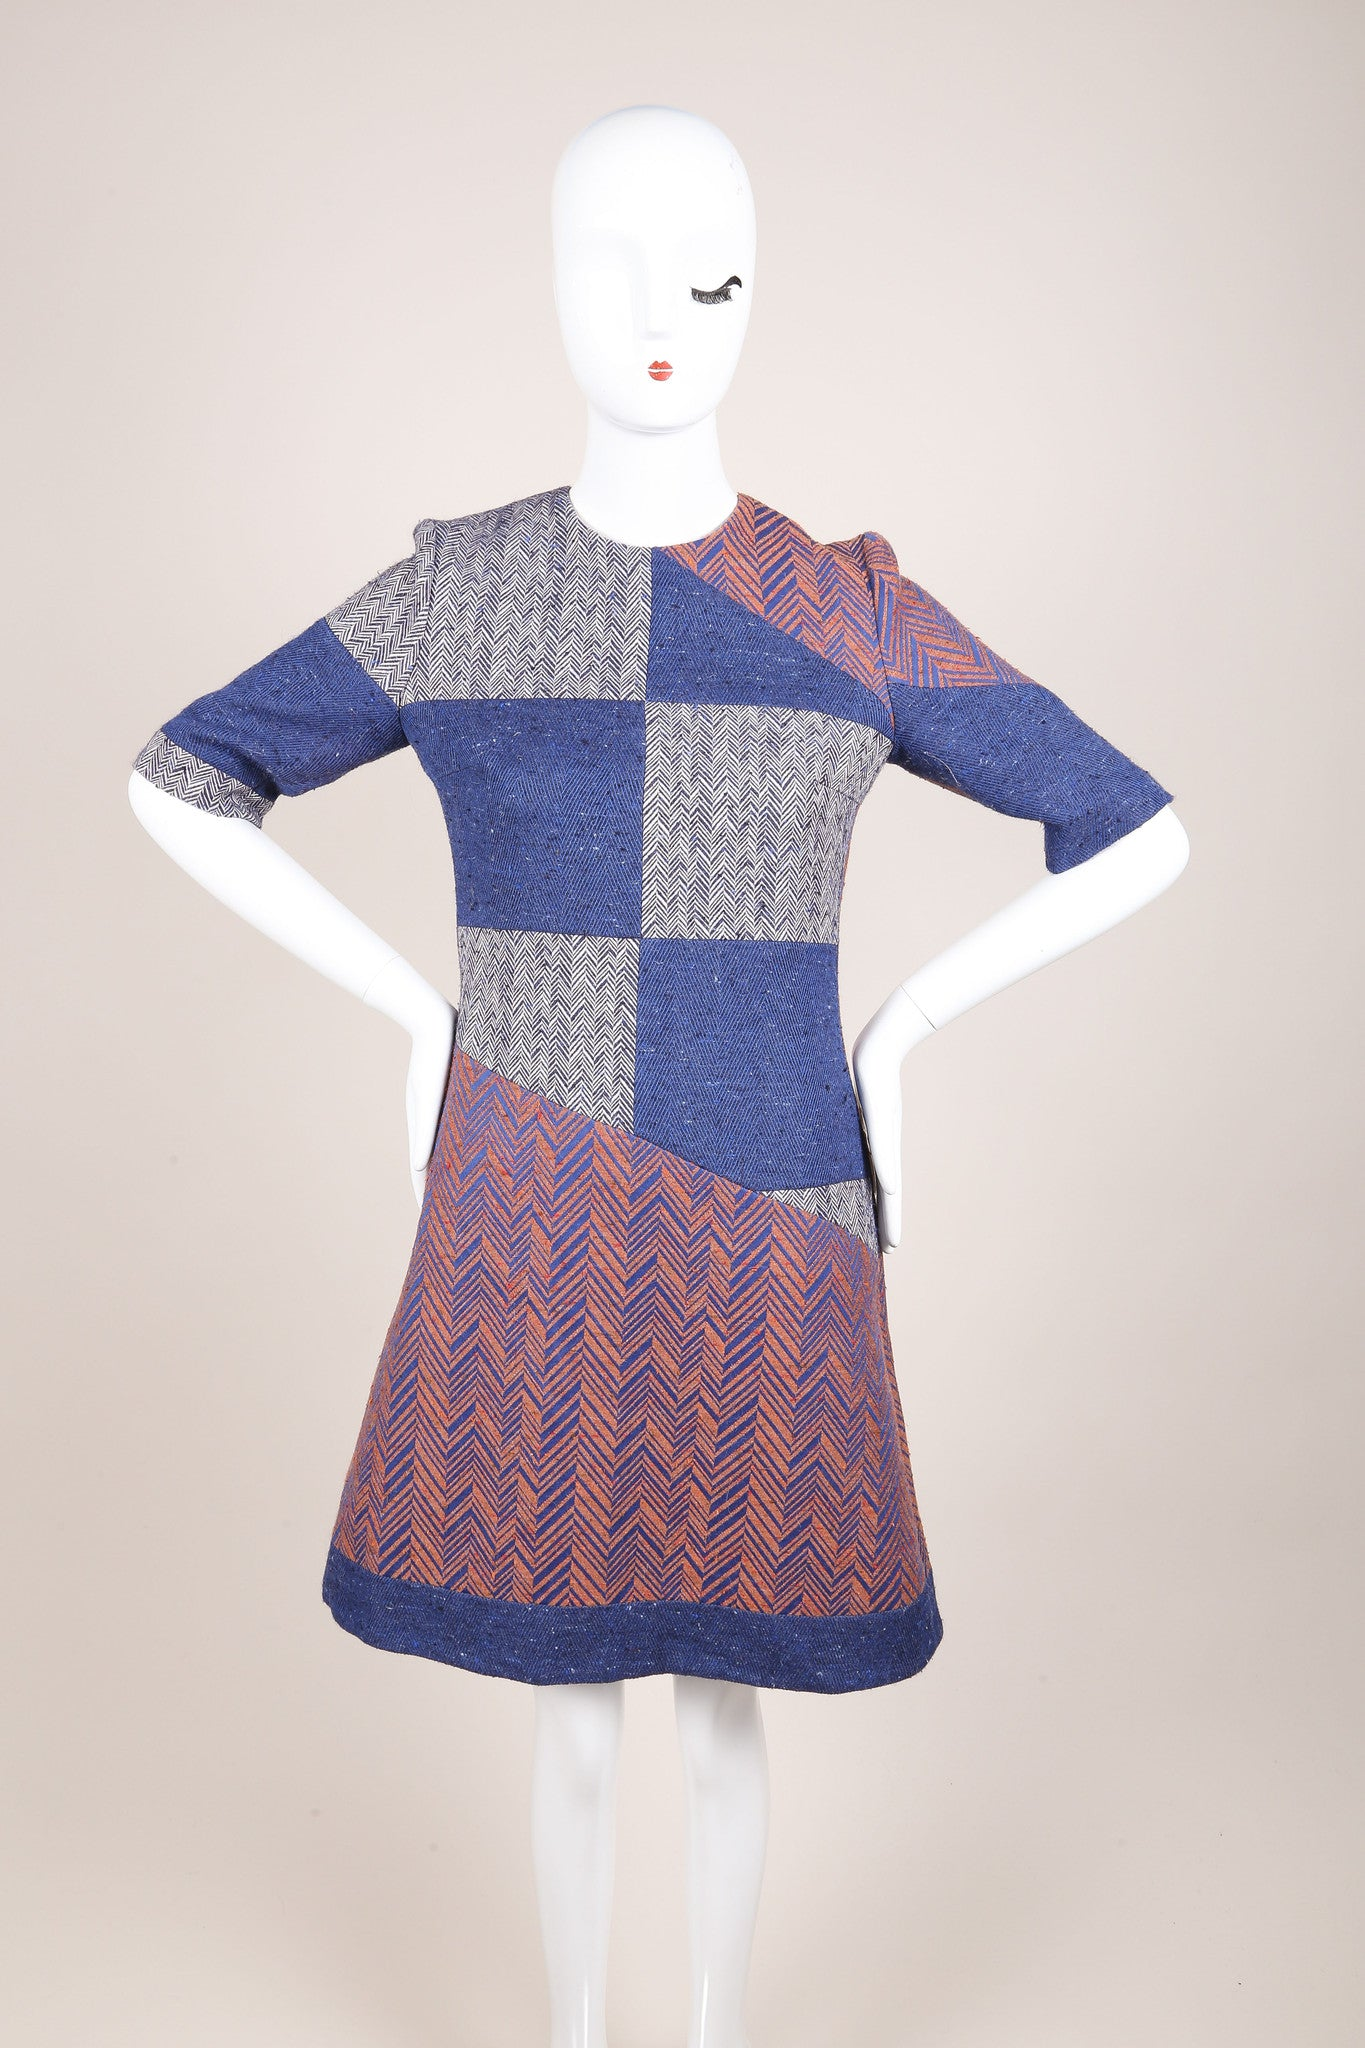 Roksanda New With Tags Blue, White, and Copper Herringbone Sheath Dress Frontview